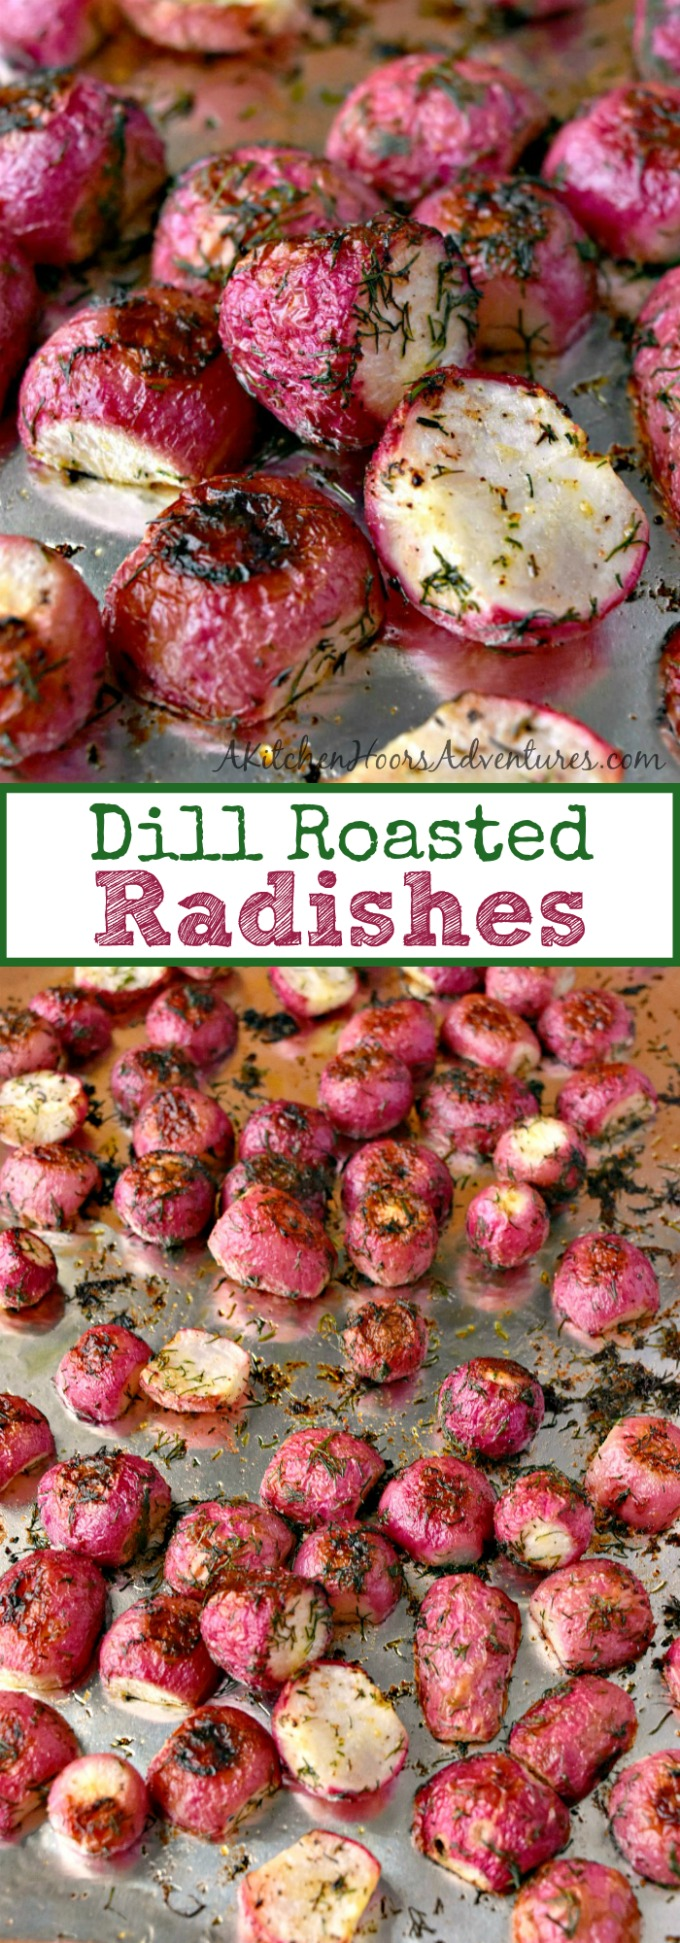 Roasting radishes changes their flavor completely!  If you haven't roasted radishes, then try these Dill Roasted Radishes for a different side dish.